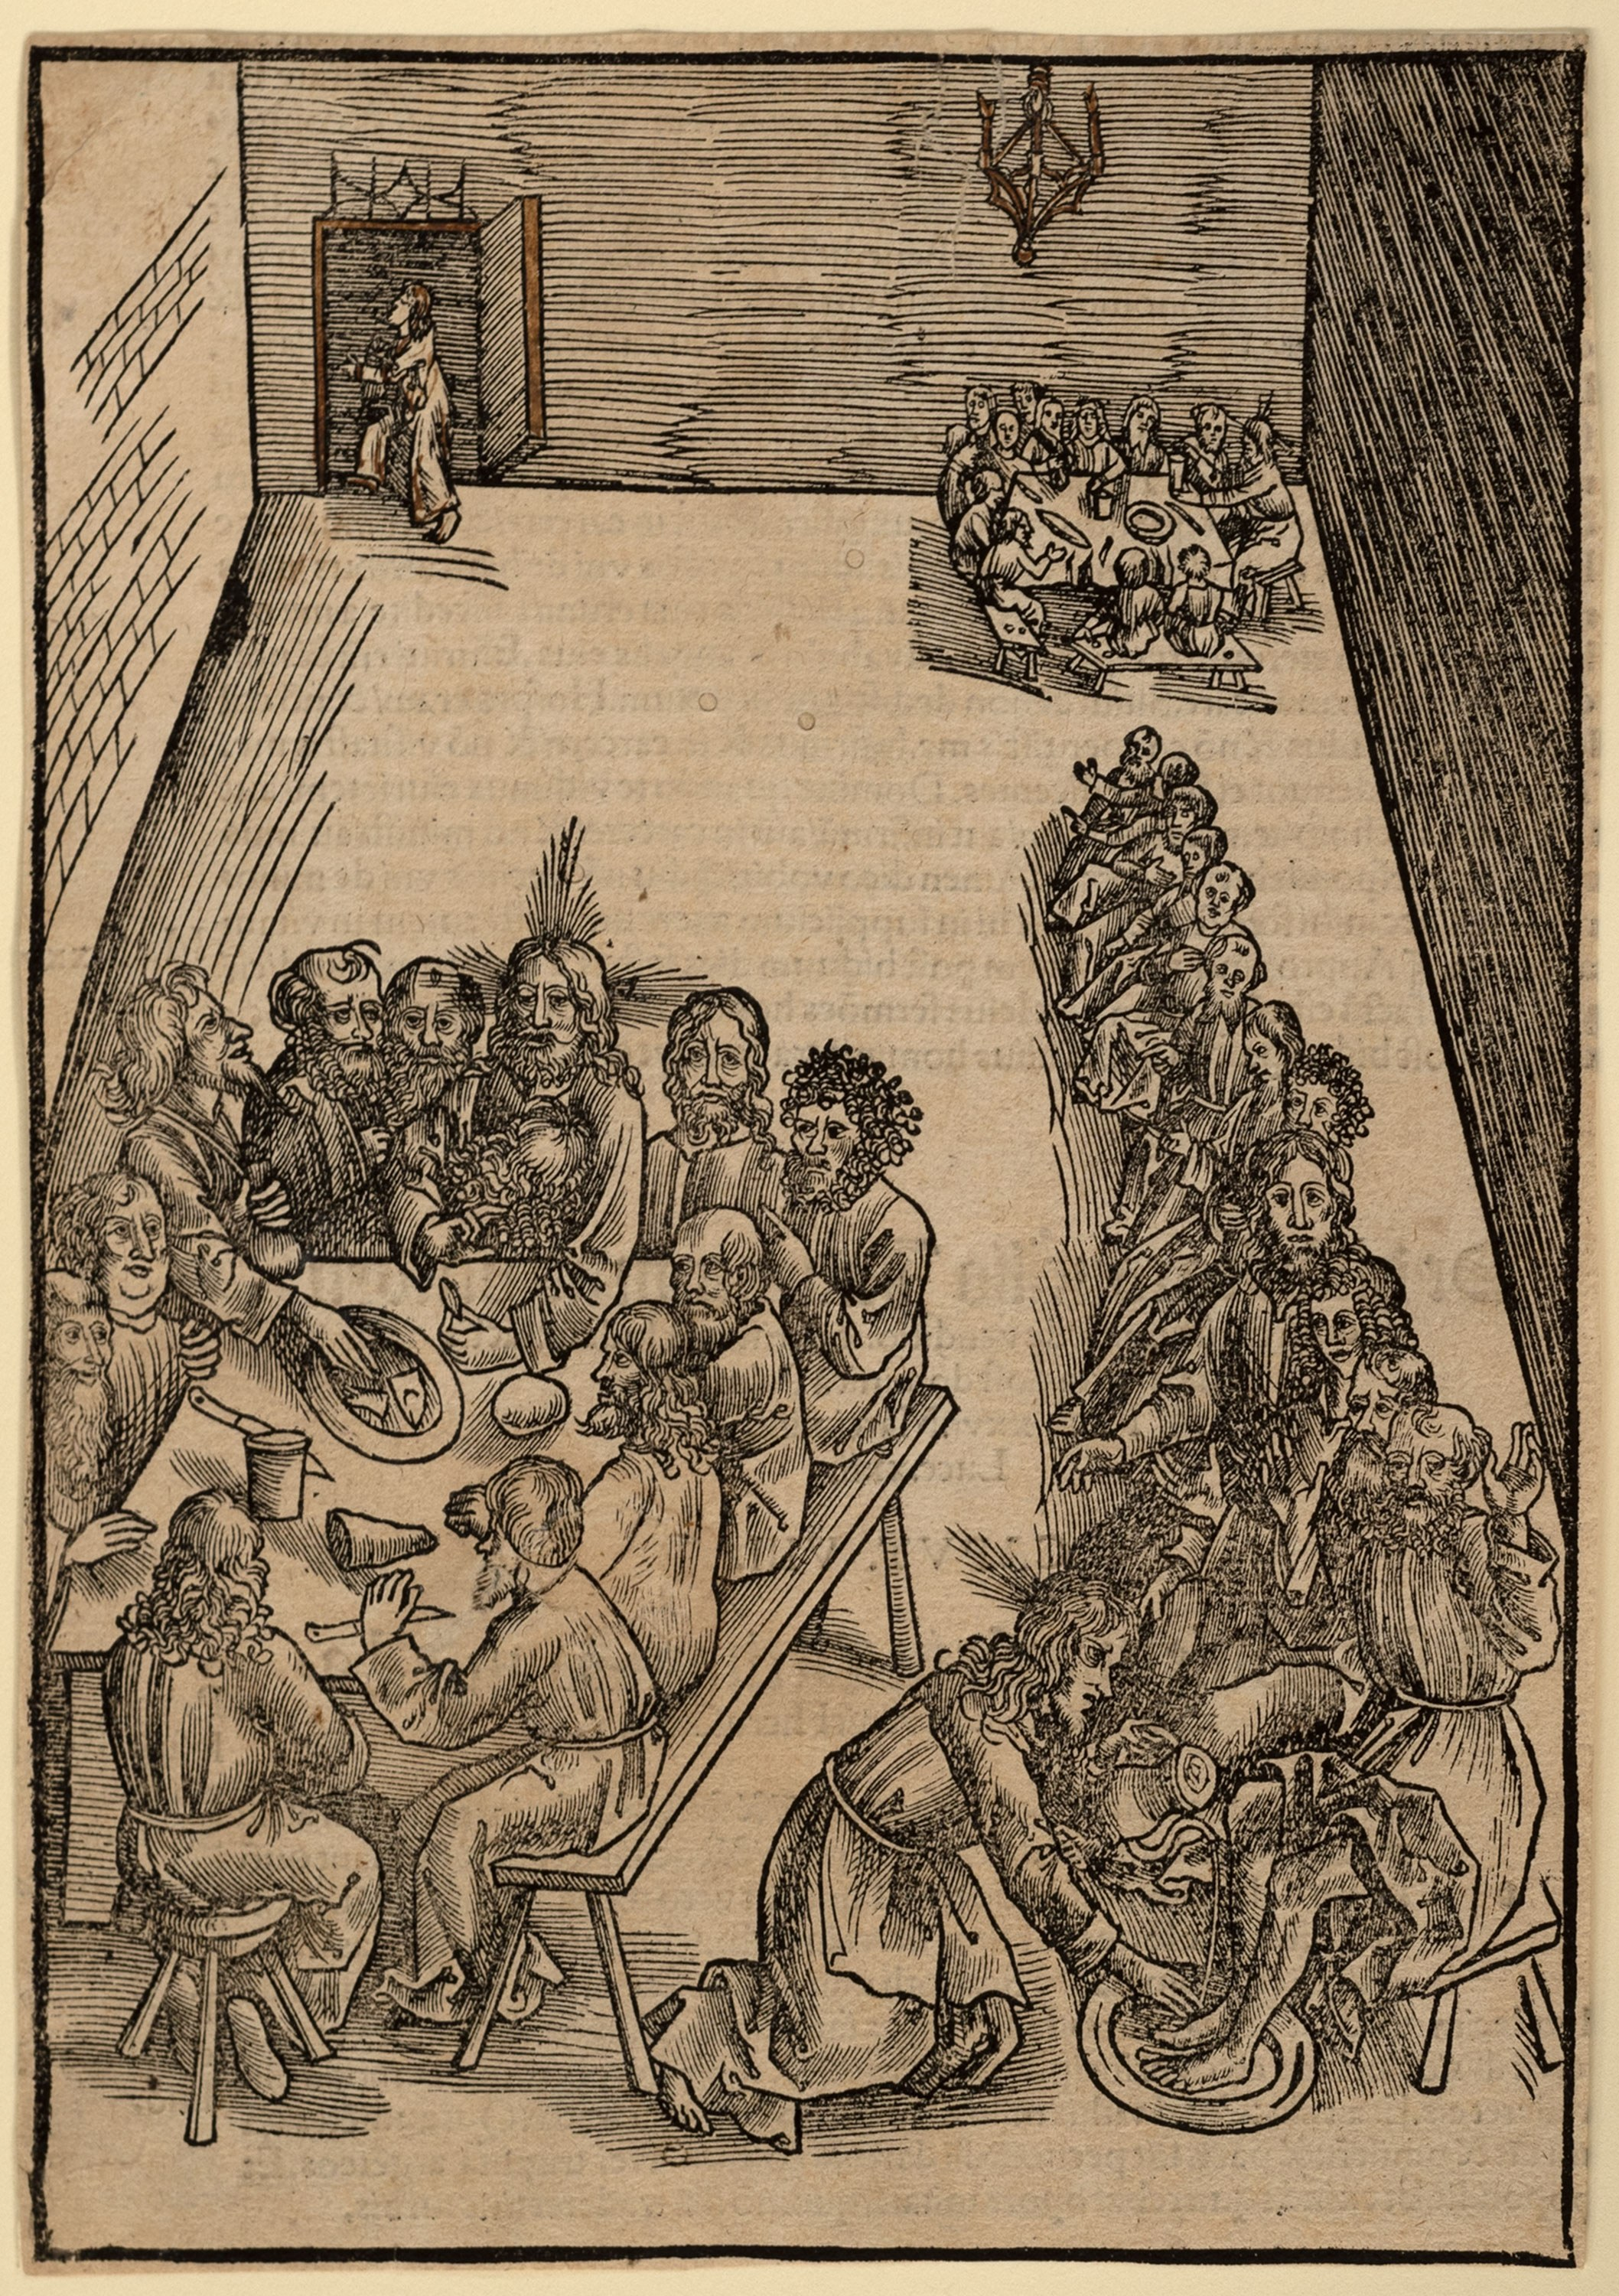 Urs Graf the Elder, Swiss, 1485–1527. The Last Supper and Christ Washing the Feet of His Disciples, plate 9 from the Passio domini nostri Jesu Christ (The Passion of Our Lord Jesus Christ), ca. 1503. Woodcut on paper, 8 ⅝ x 6 1/16 in. Gift of Annette Marcinkoski, 2016.84